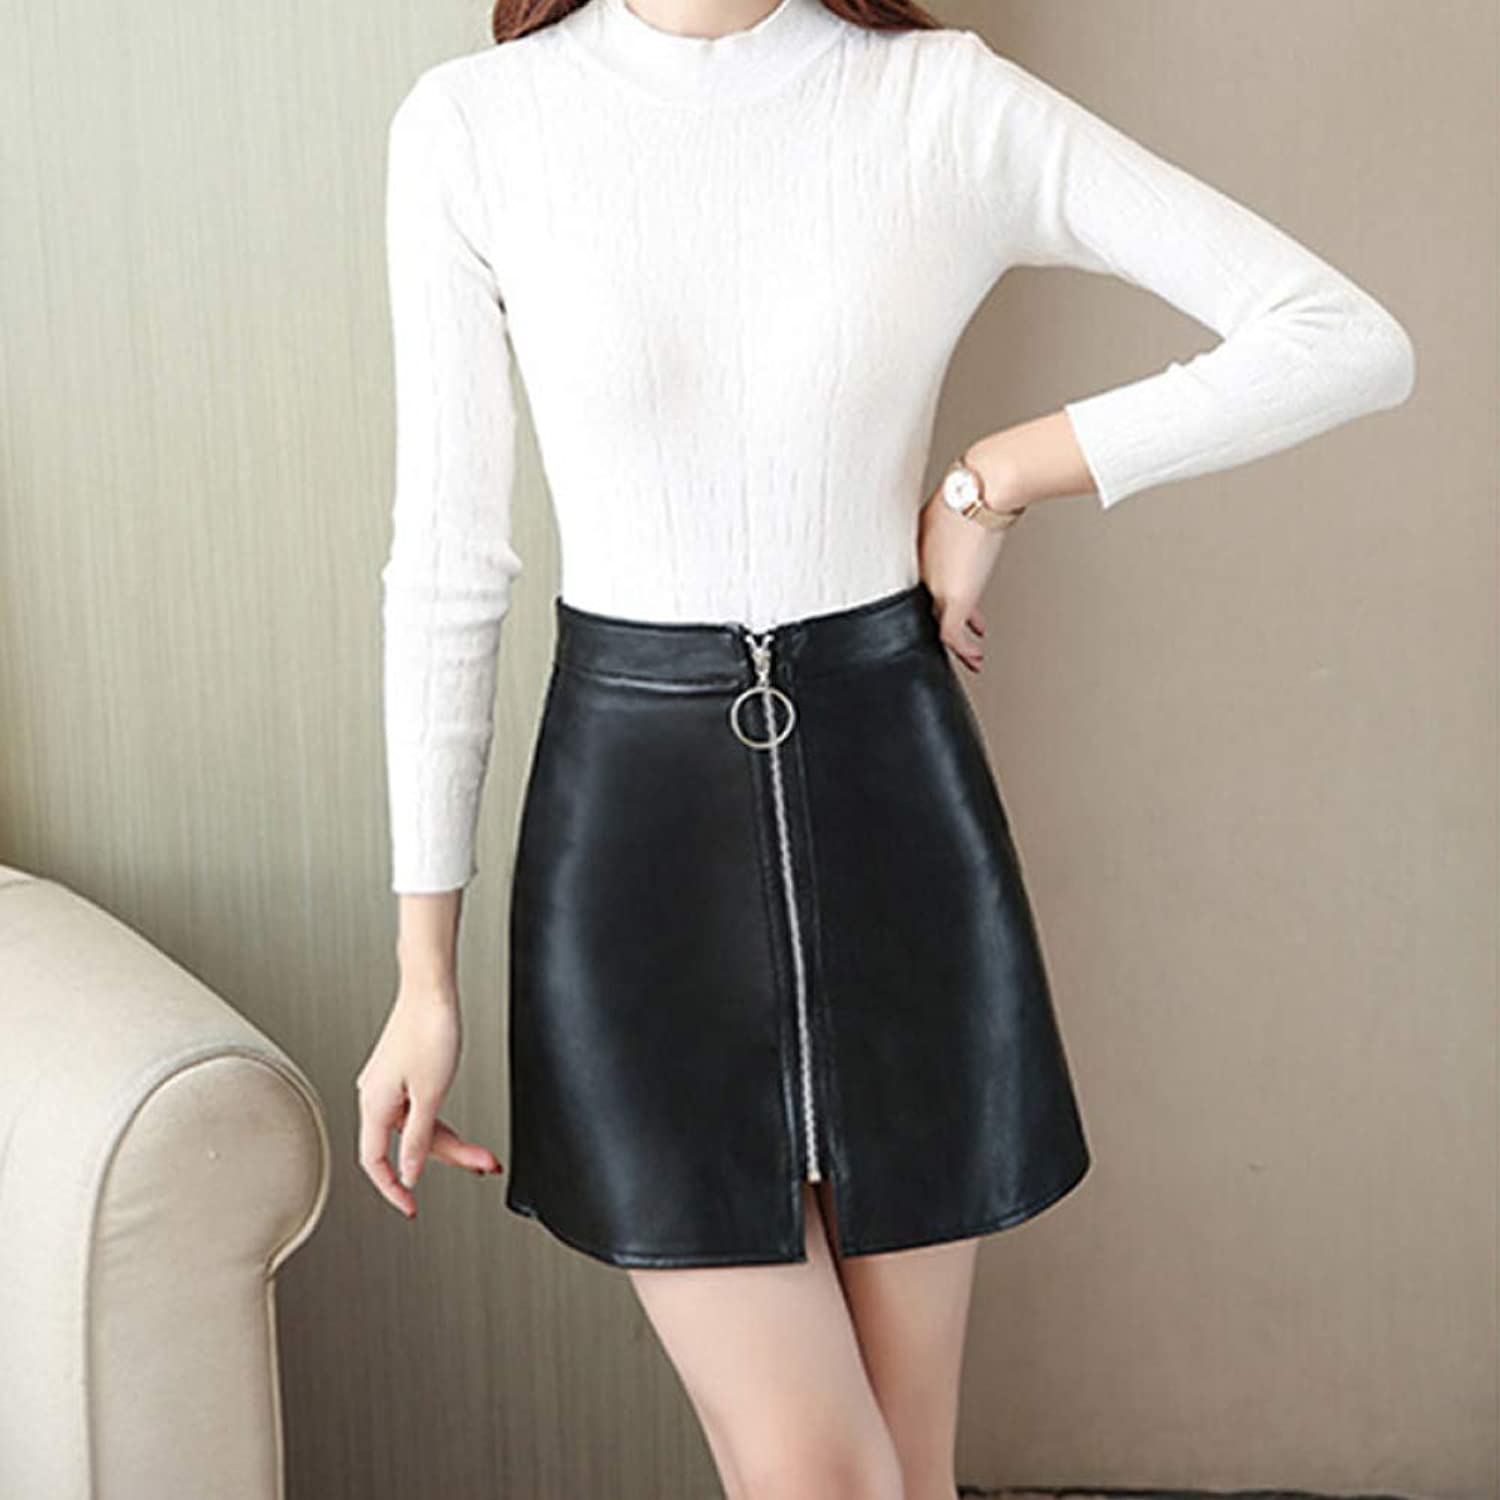 DAHDXD Spring Summer Casual Solid Pu Leather Skirt Women High Waist Mini ALine Skirt Lady Black Short Skinny Skirts